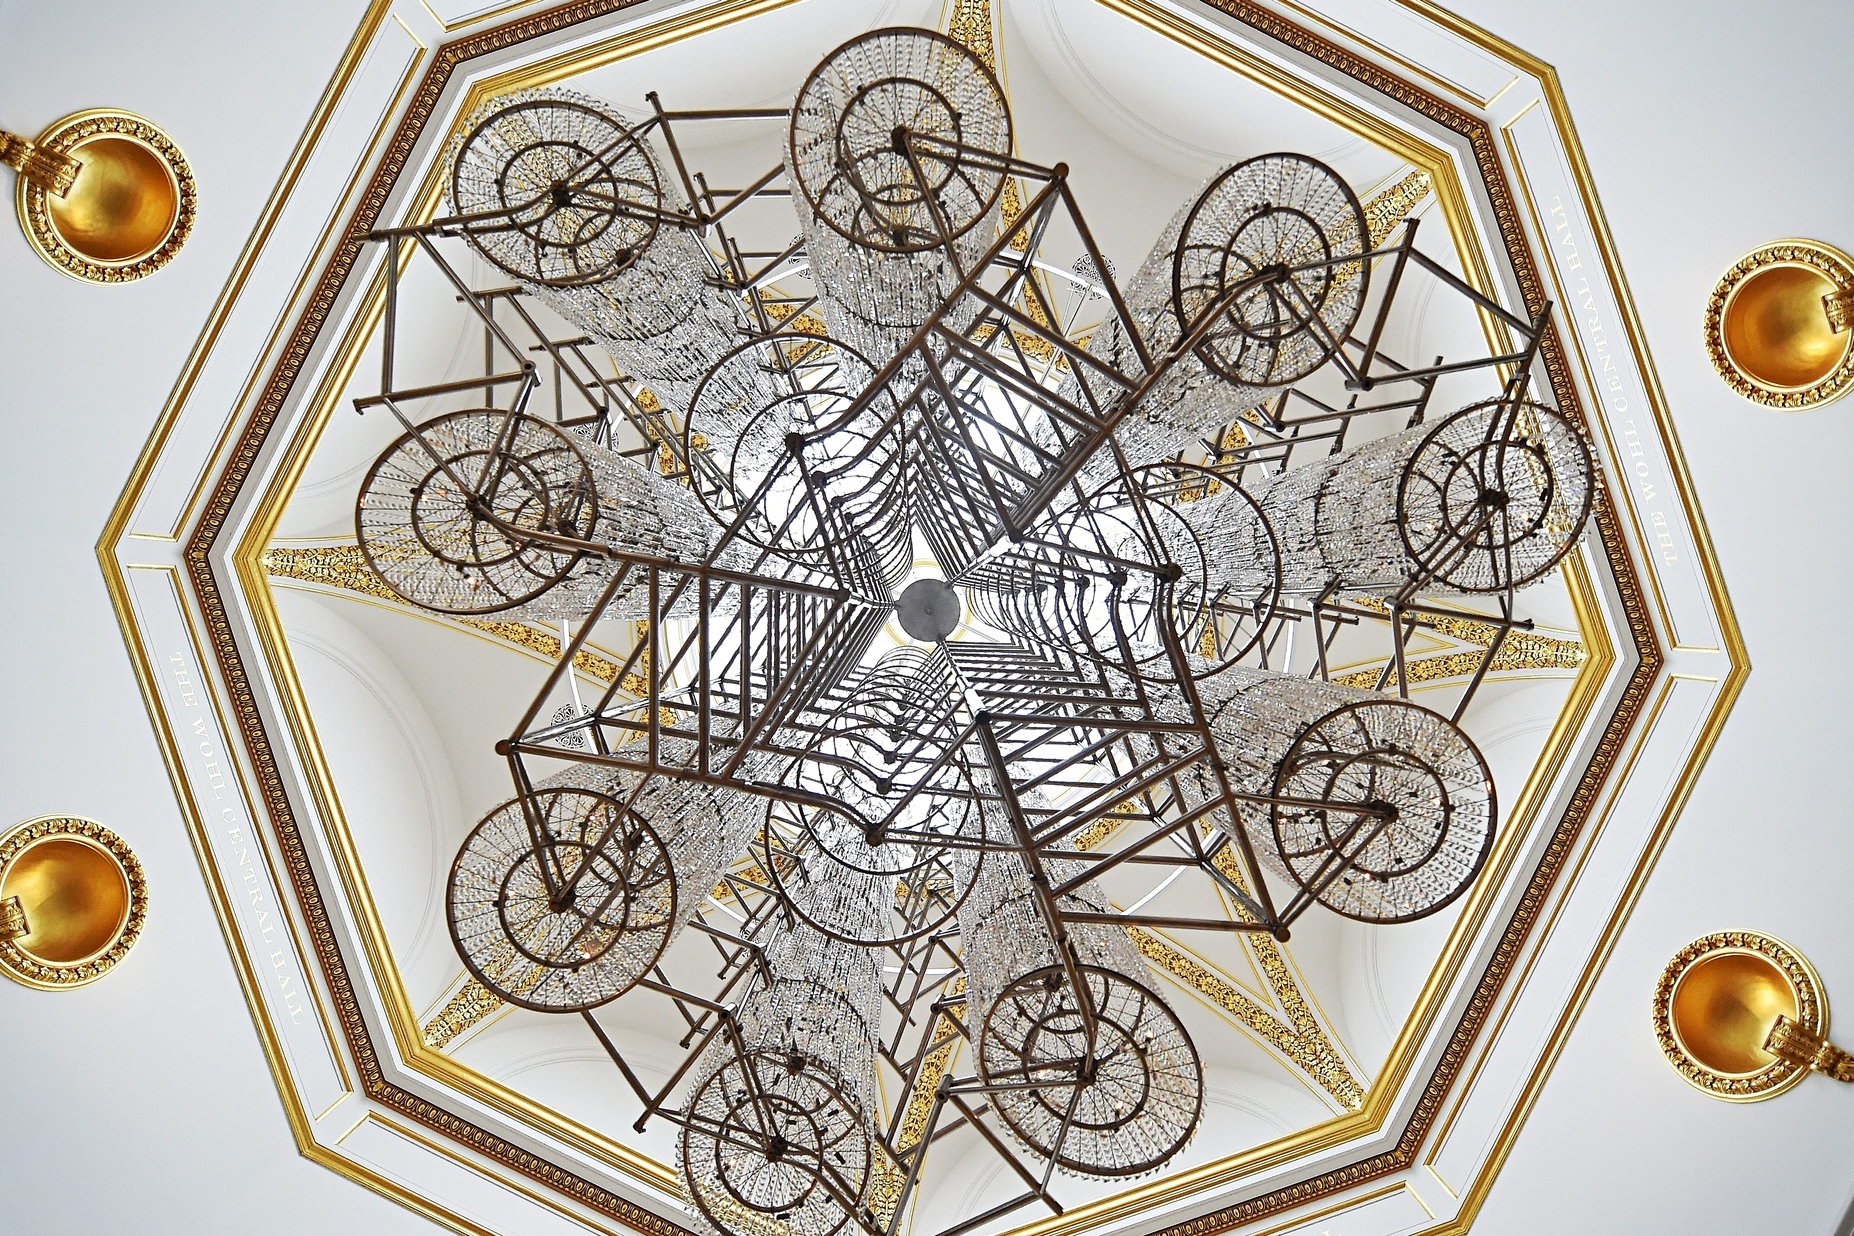 Bicycle Chandelier, 2015 - Bicycles and crystals, 500 x 430cm